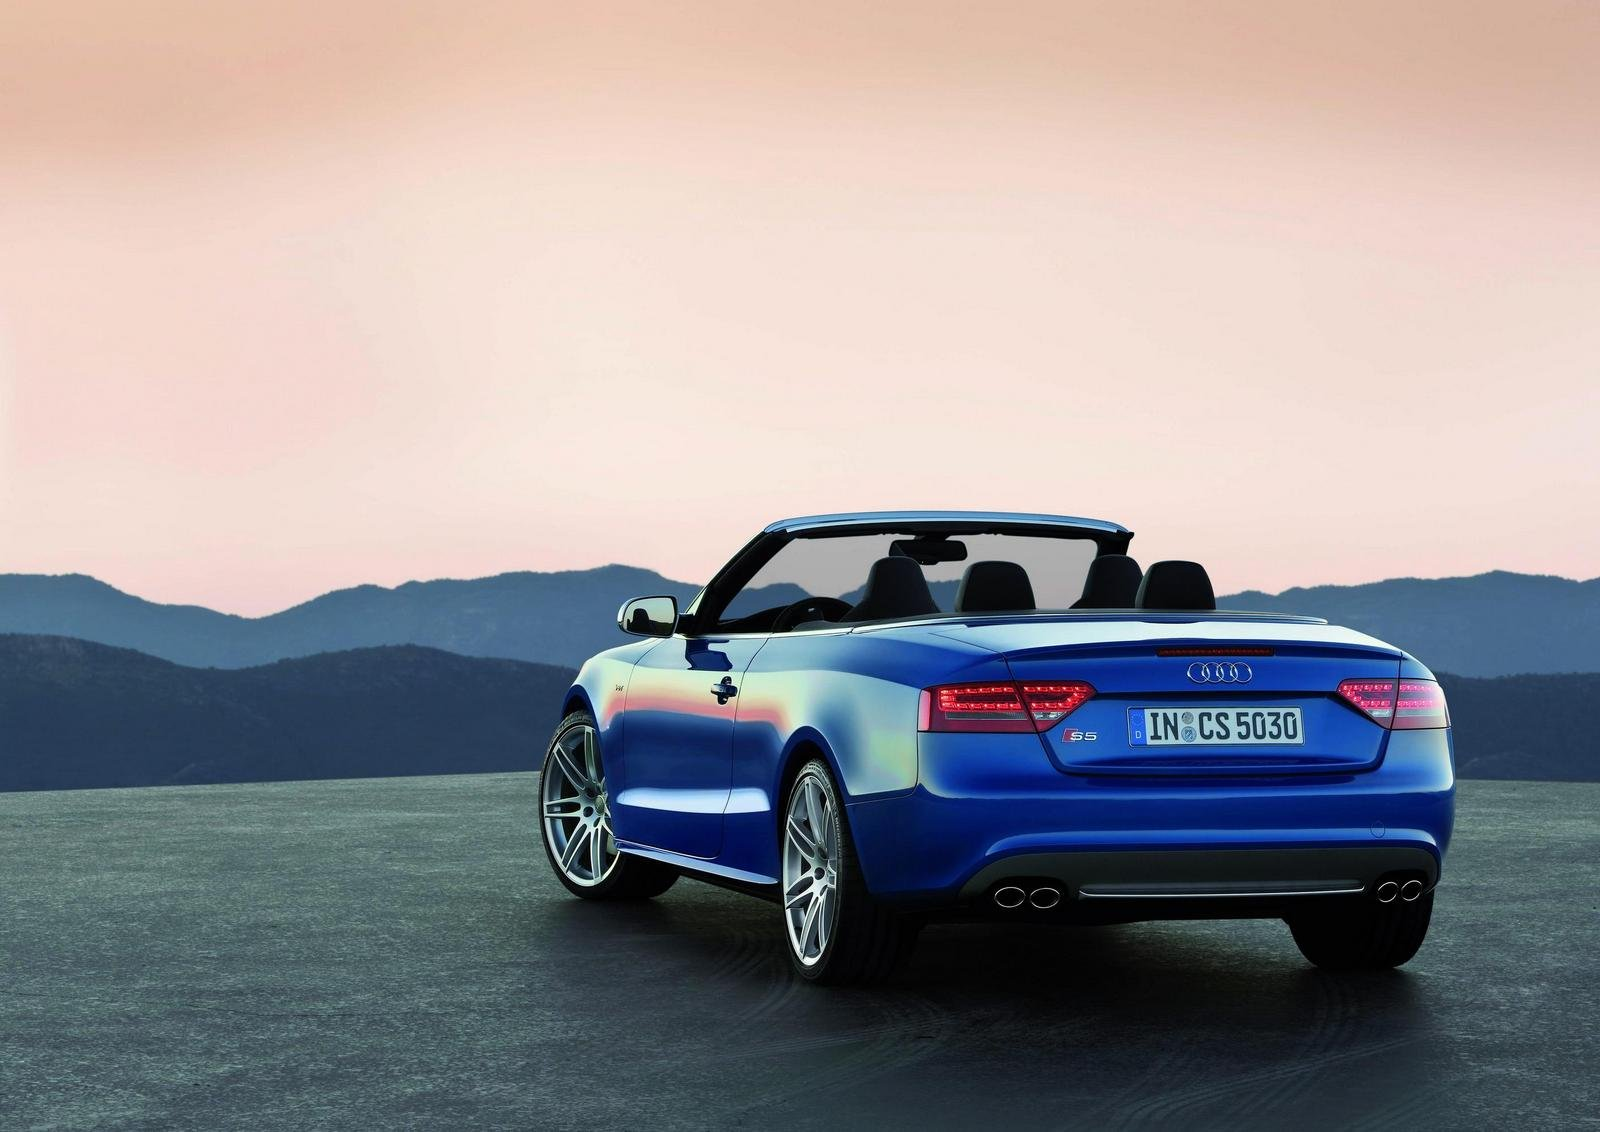 2009 audi a5 s5 convertible picture 287411 car review top speed. Black Bedroom Furniture Sets. Home Design Ideas